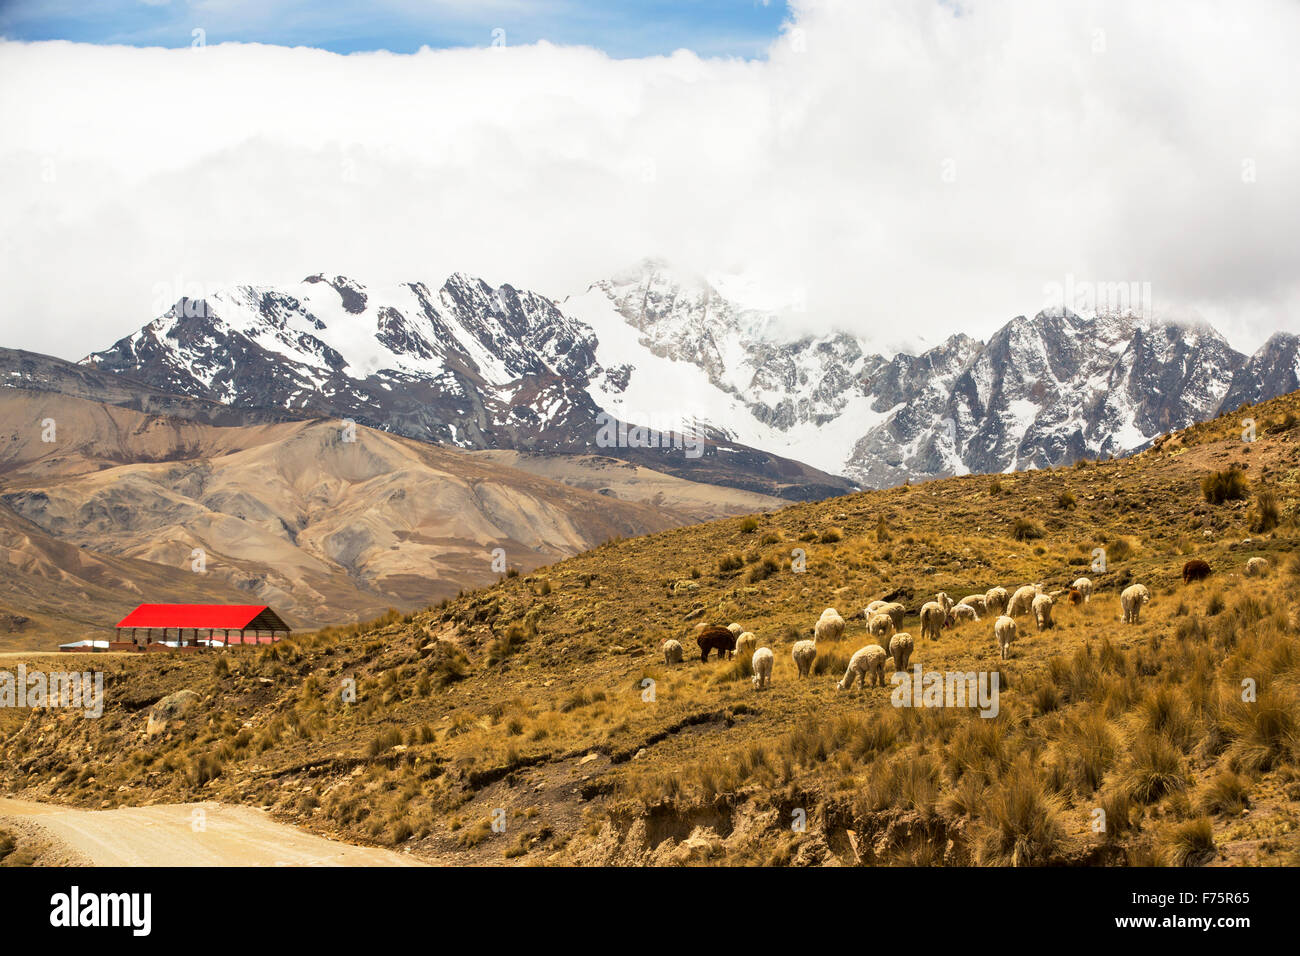 Looking over the Altiplano with Lama's grazing to the snow covered Andean peak of Huayna Potosi in Bolivia. - Stock Image